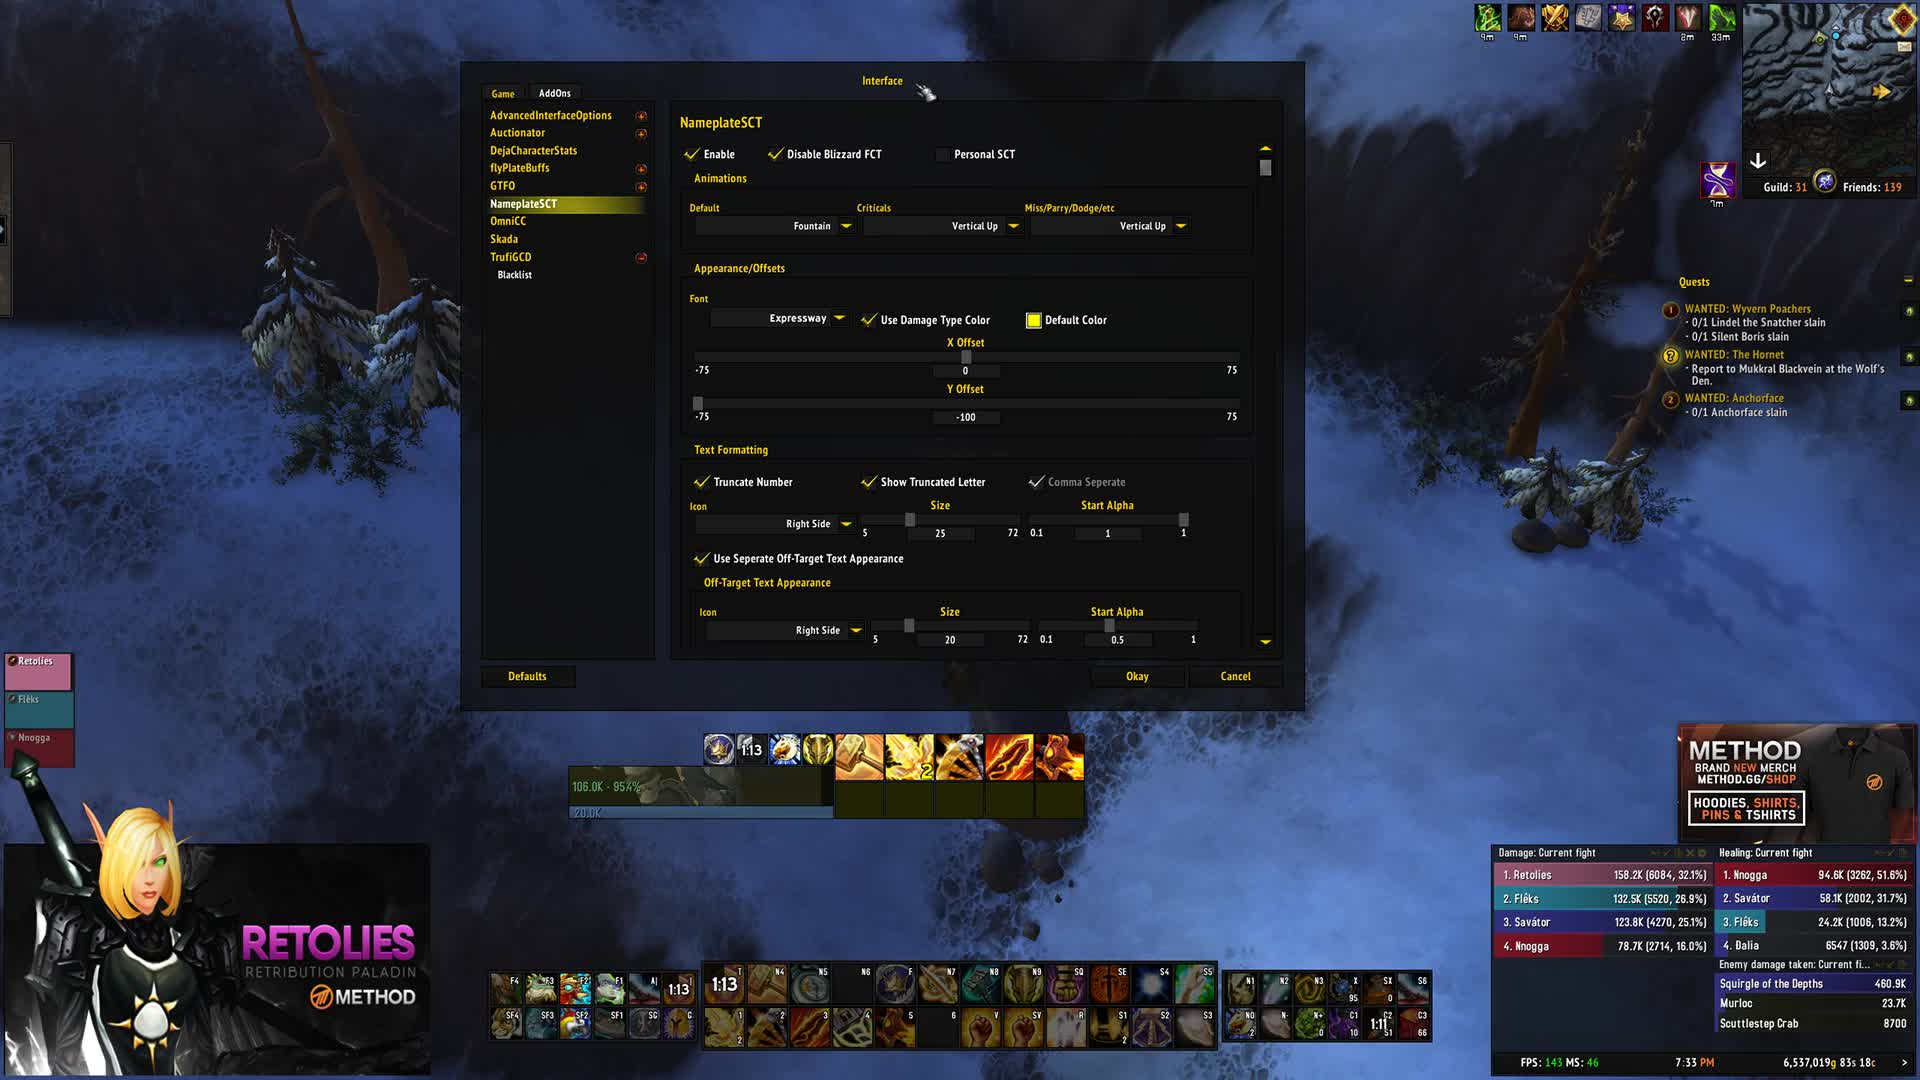 Narcolies - Scrolling Combat Text Settings - Twitch